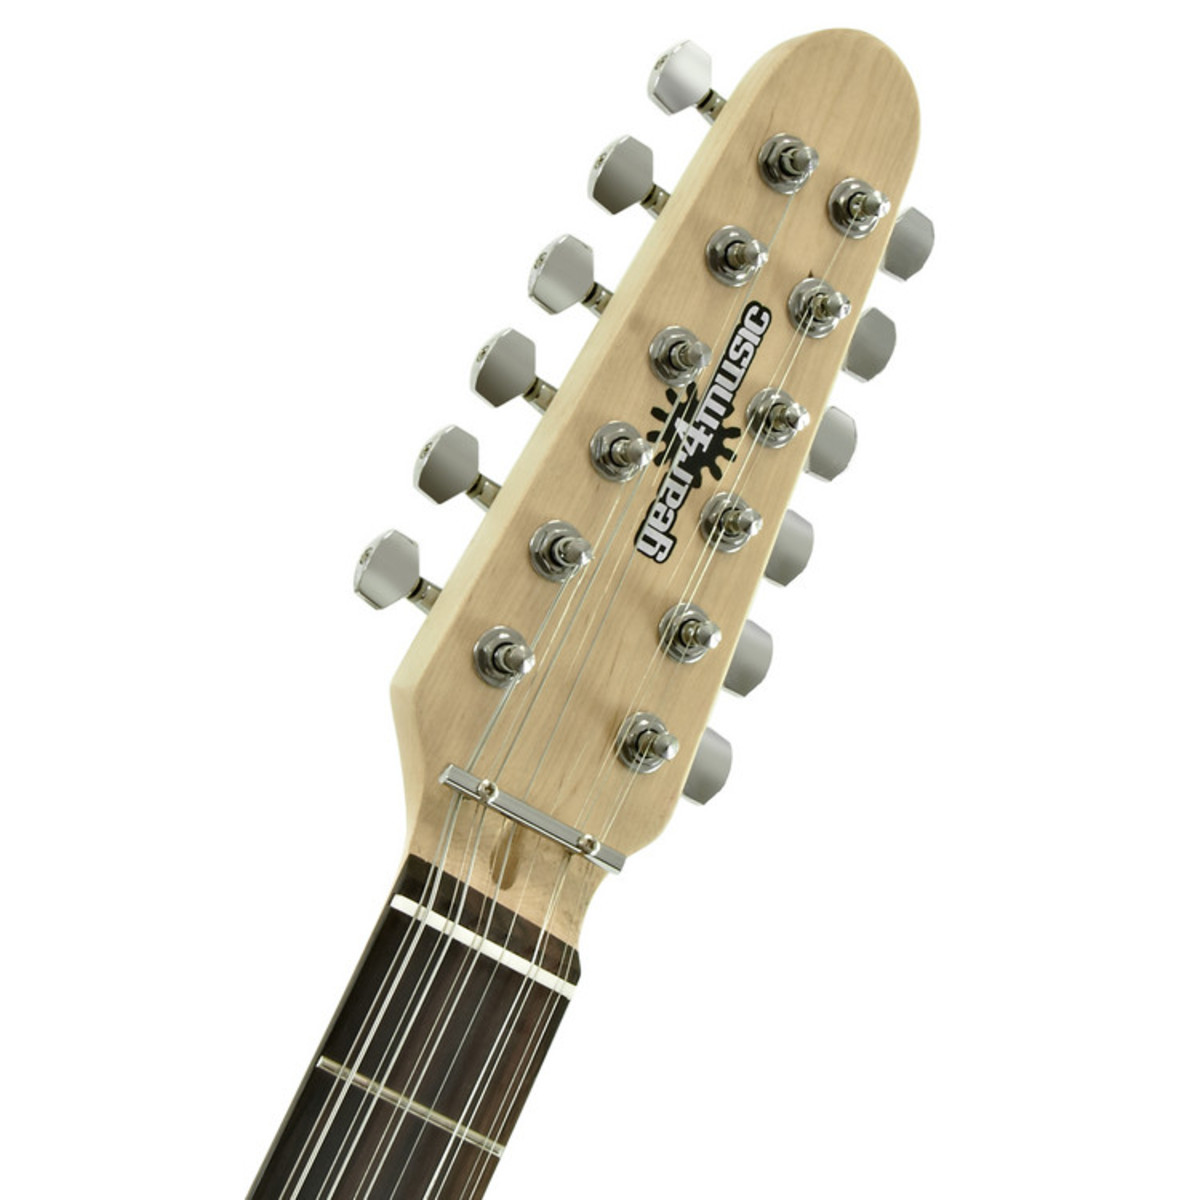 knoxville deluxe 12 string electric guitar by gear4music nearly new at gear4music. Black Bedroom Furniture Sets. Home Design Ideas